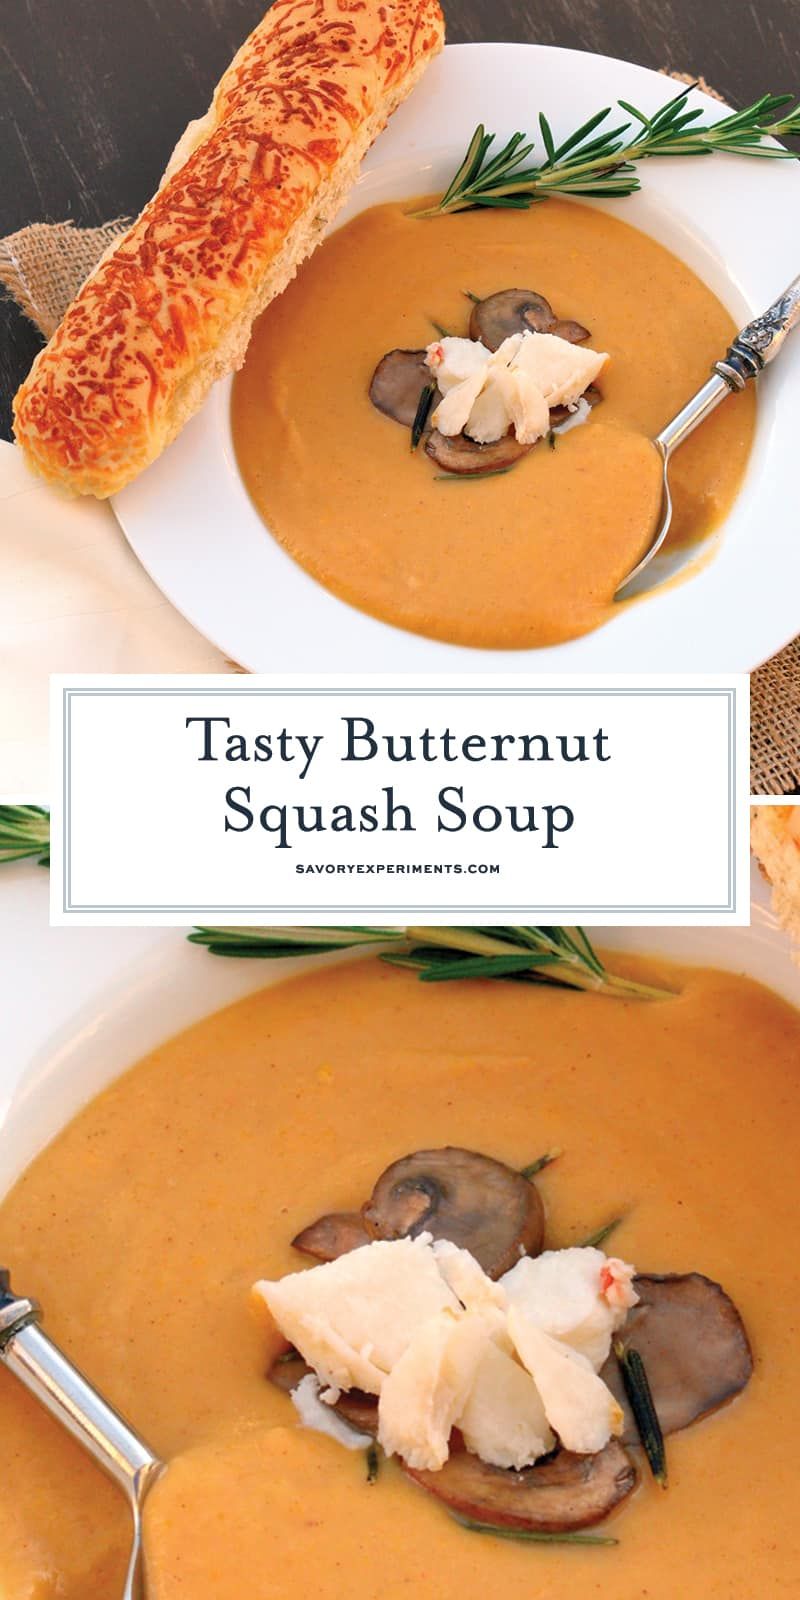 My Butternut Squash Soup recipe is the perfect way to celebrate the spoils of fall all year long. Served hot or chilled, your guests are in for a treat. #butternutsquashsoup #butternutsquash www.savoryexperiments.com